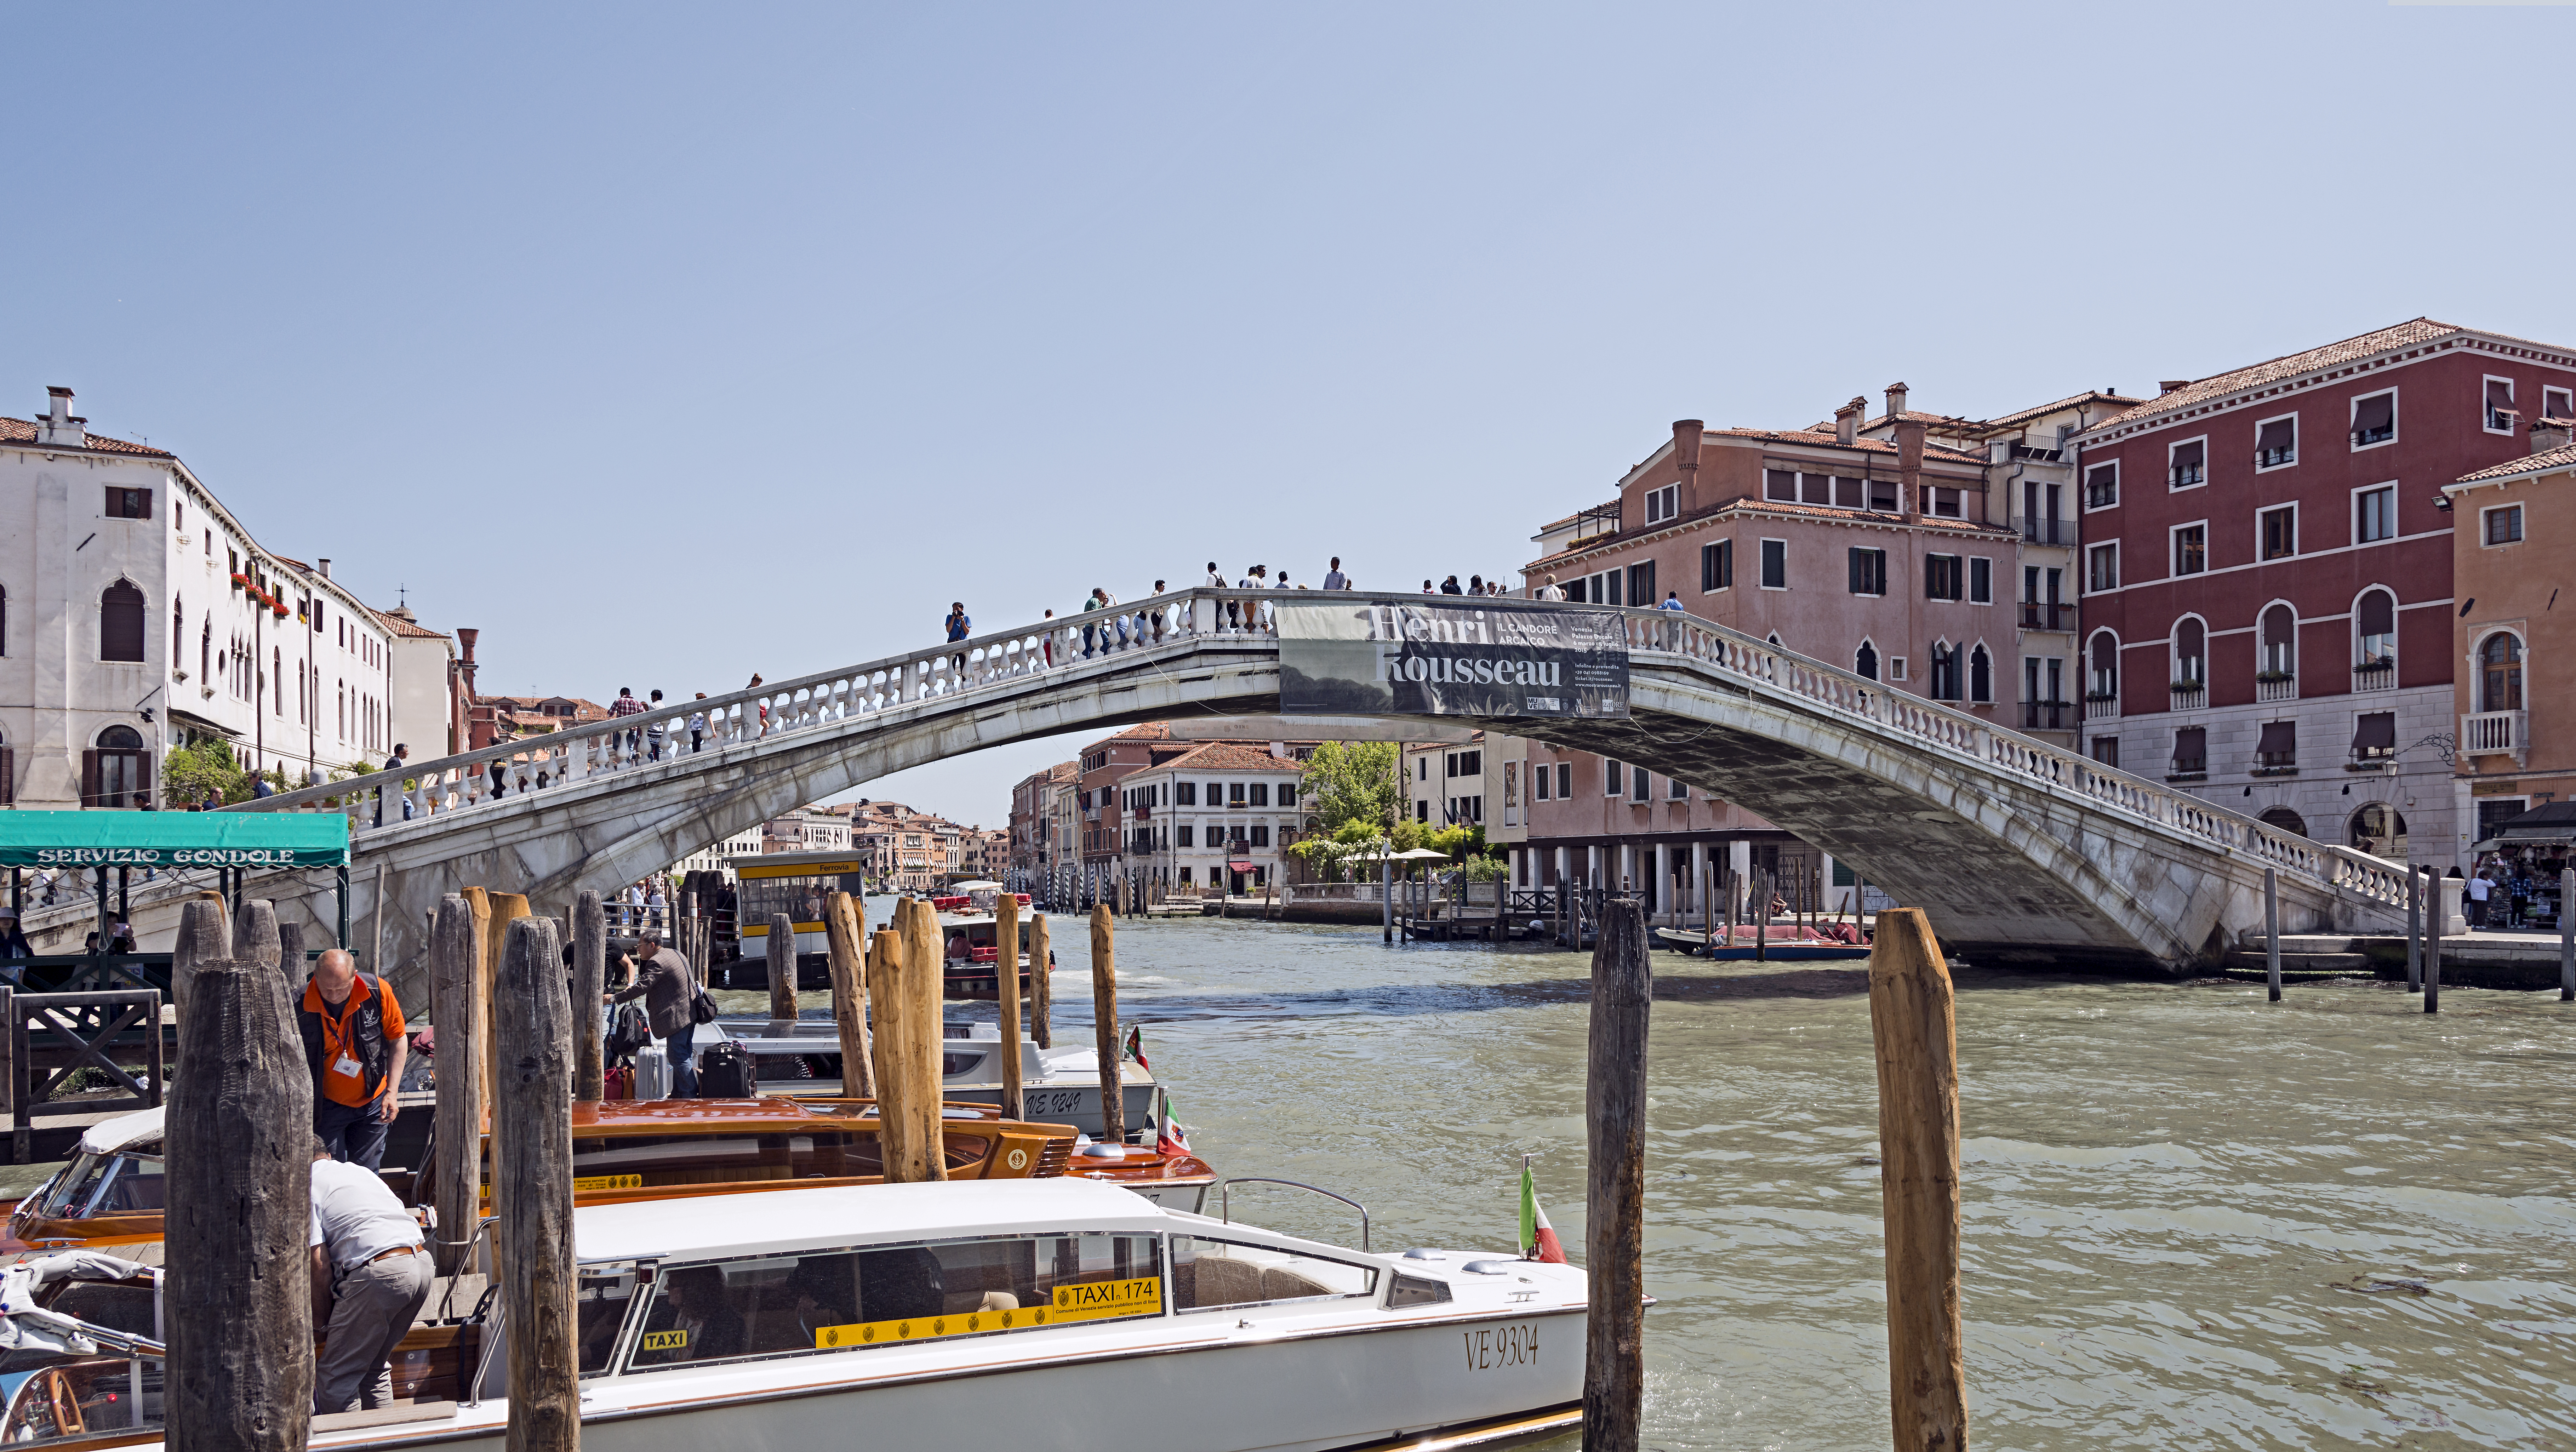 https://upload.wikimedia.org/wikipedia/commons/1/13/Ponte_degli_Scalzi_%28Venice%29.jpg